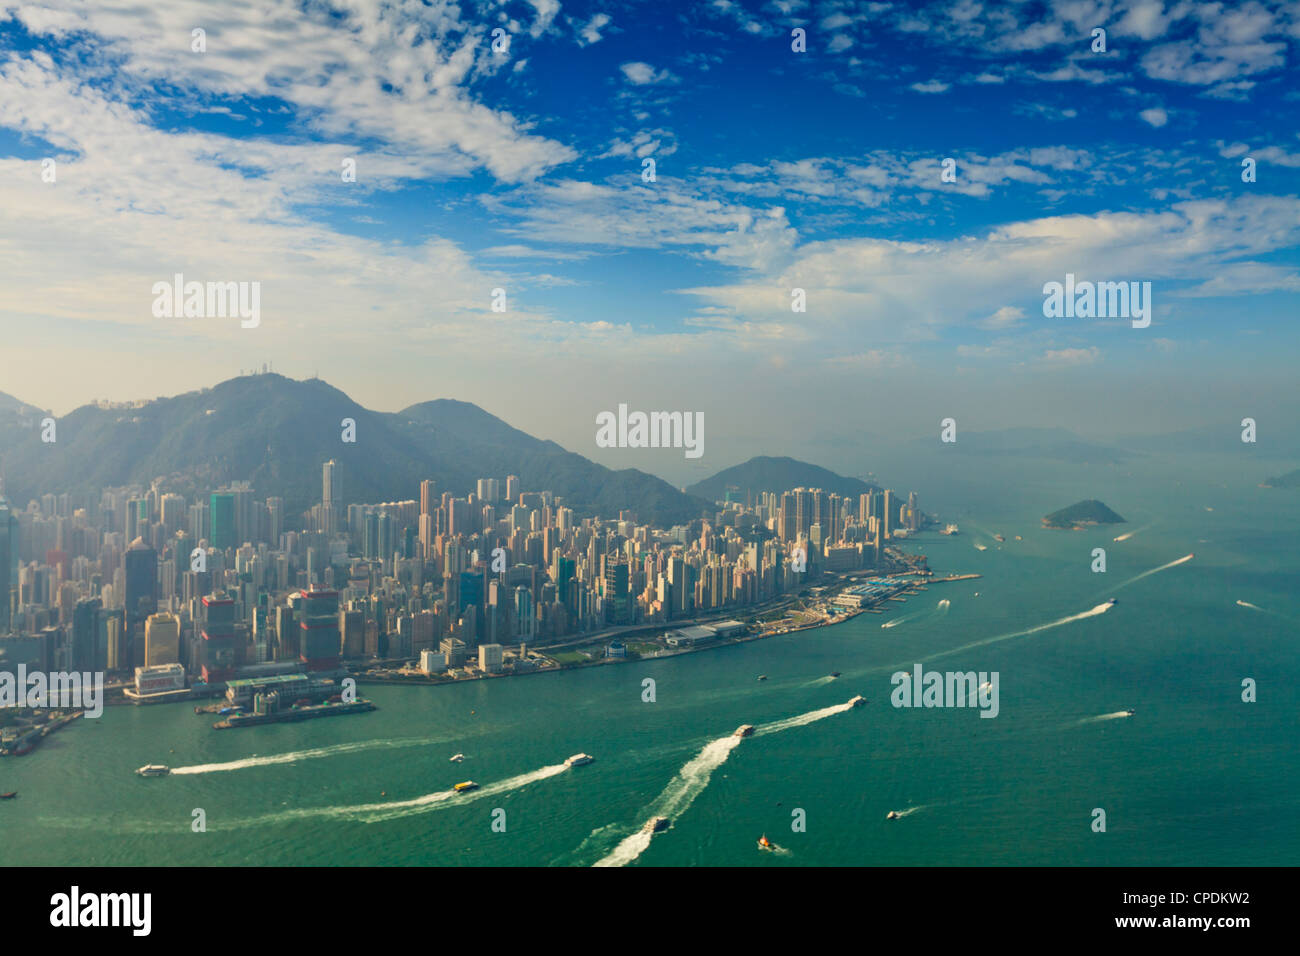 High view of the Hong Kong Island skyline and Victoria harbour, Hong Kong, China, Asia - Stock Image